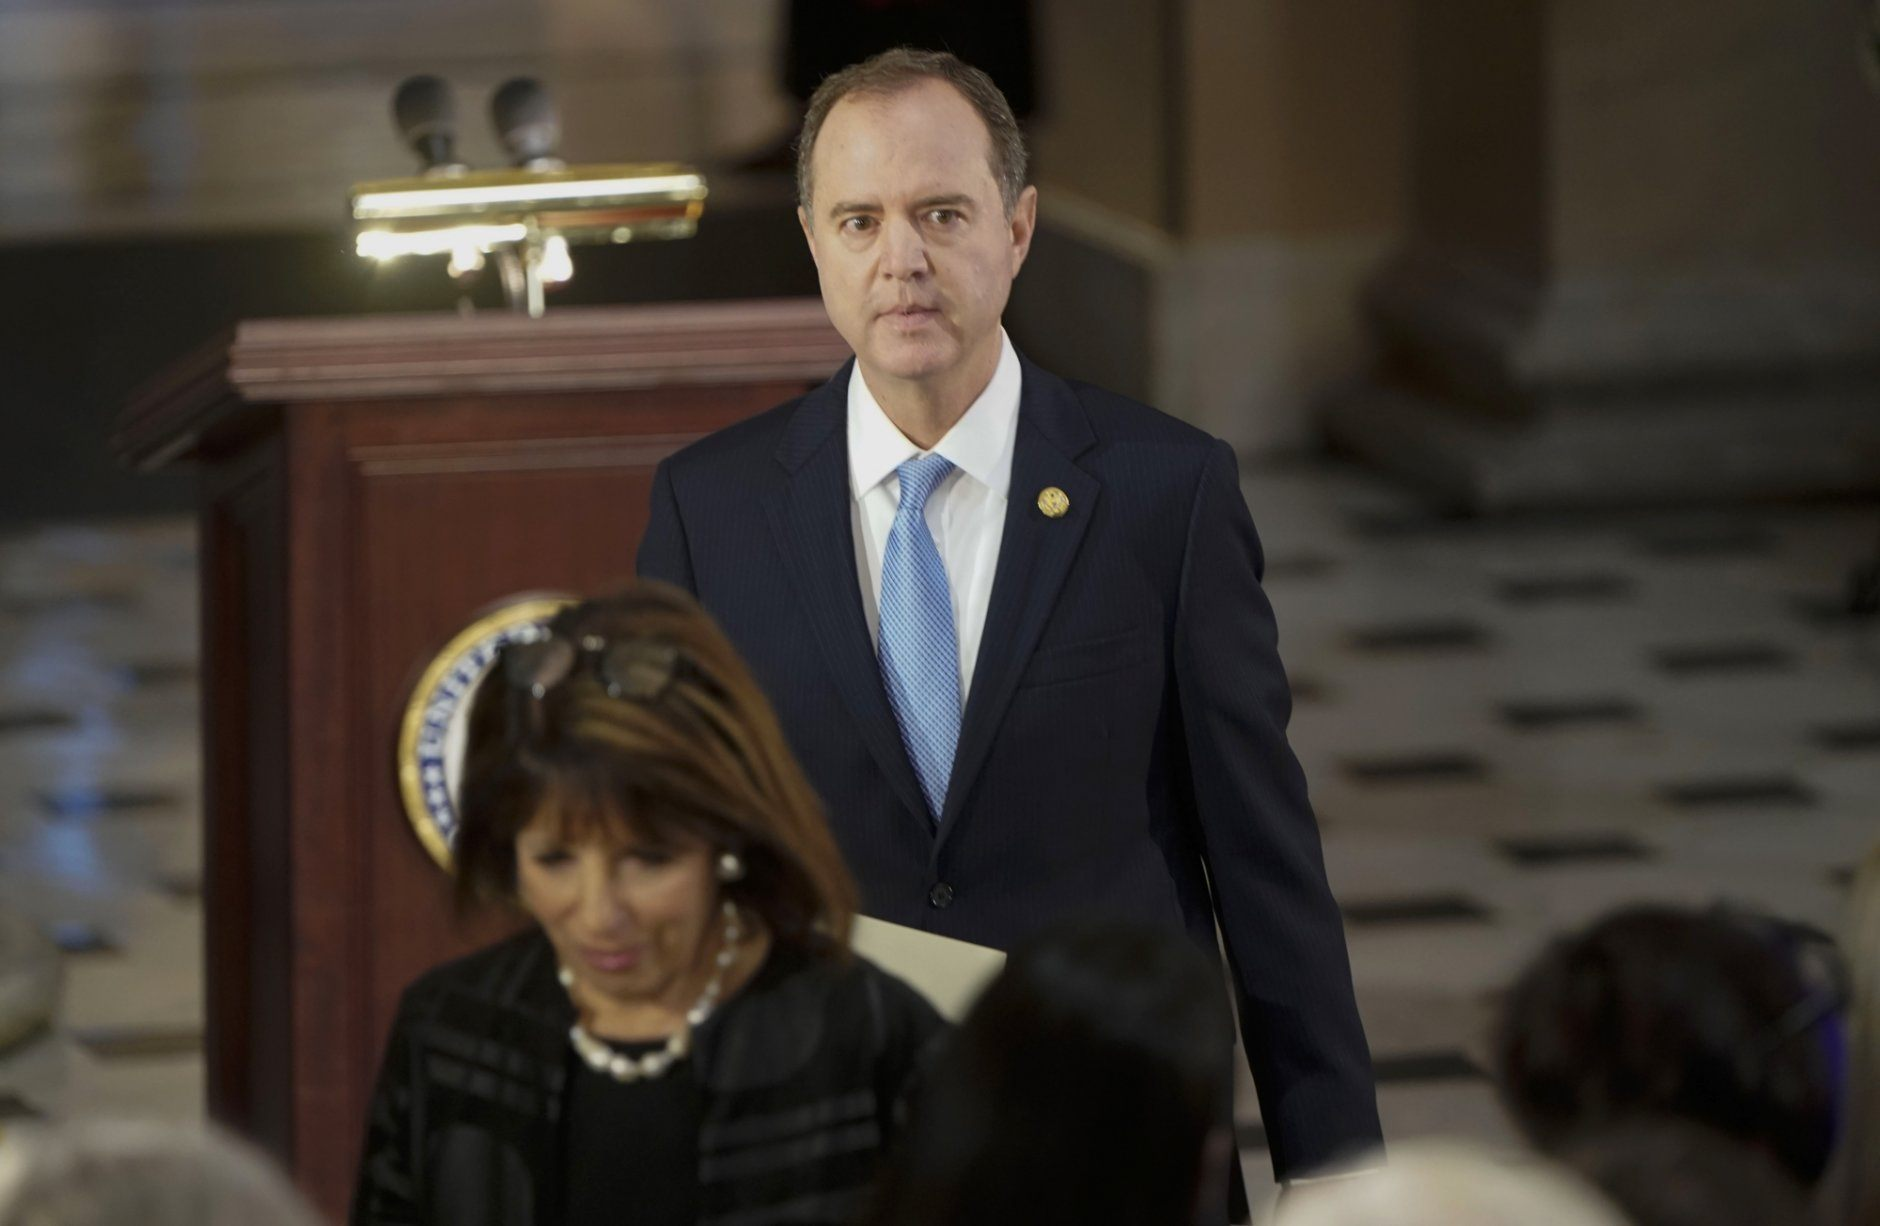 House Intelligence Committee Chairman Adam Schiff, D-Calif., and Rep Jackie Speier, D-Calif., arrive for memorial services for Rep. Elijah Cummings, D-Md., in Statuary Hall at the U.S. Capitol in Washington, Thursday, Oct. 24, 2019. (Joshua Roberts/Pool via AP)